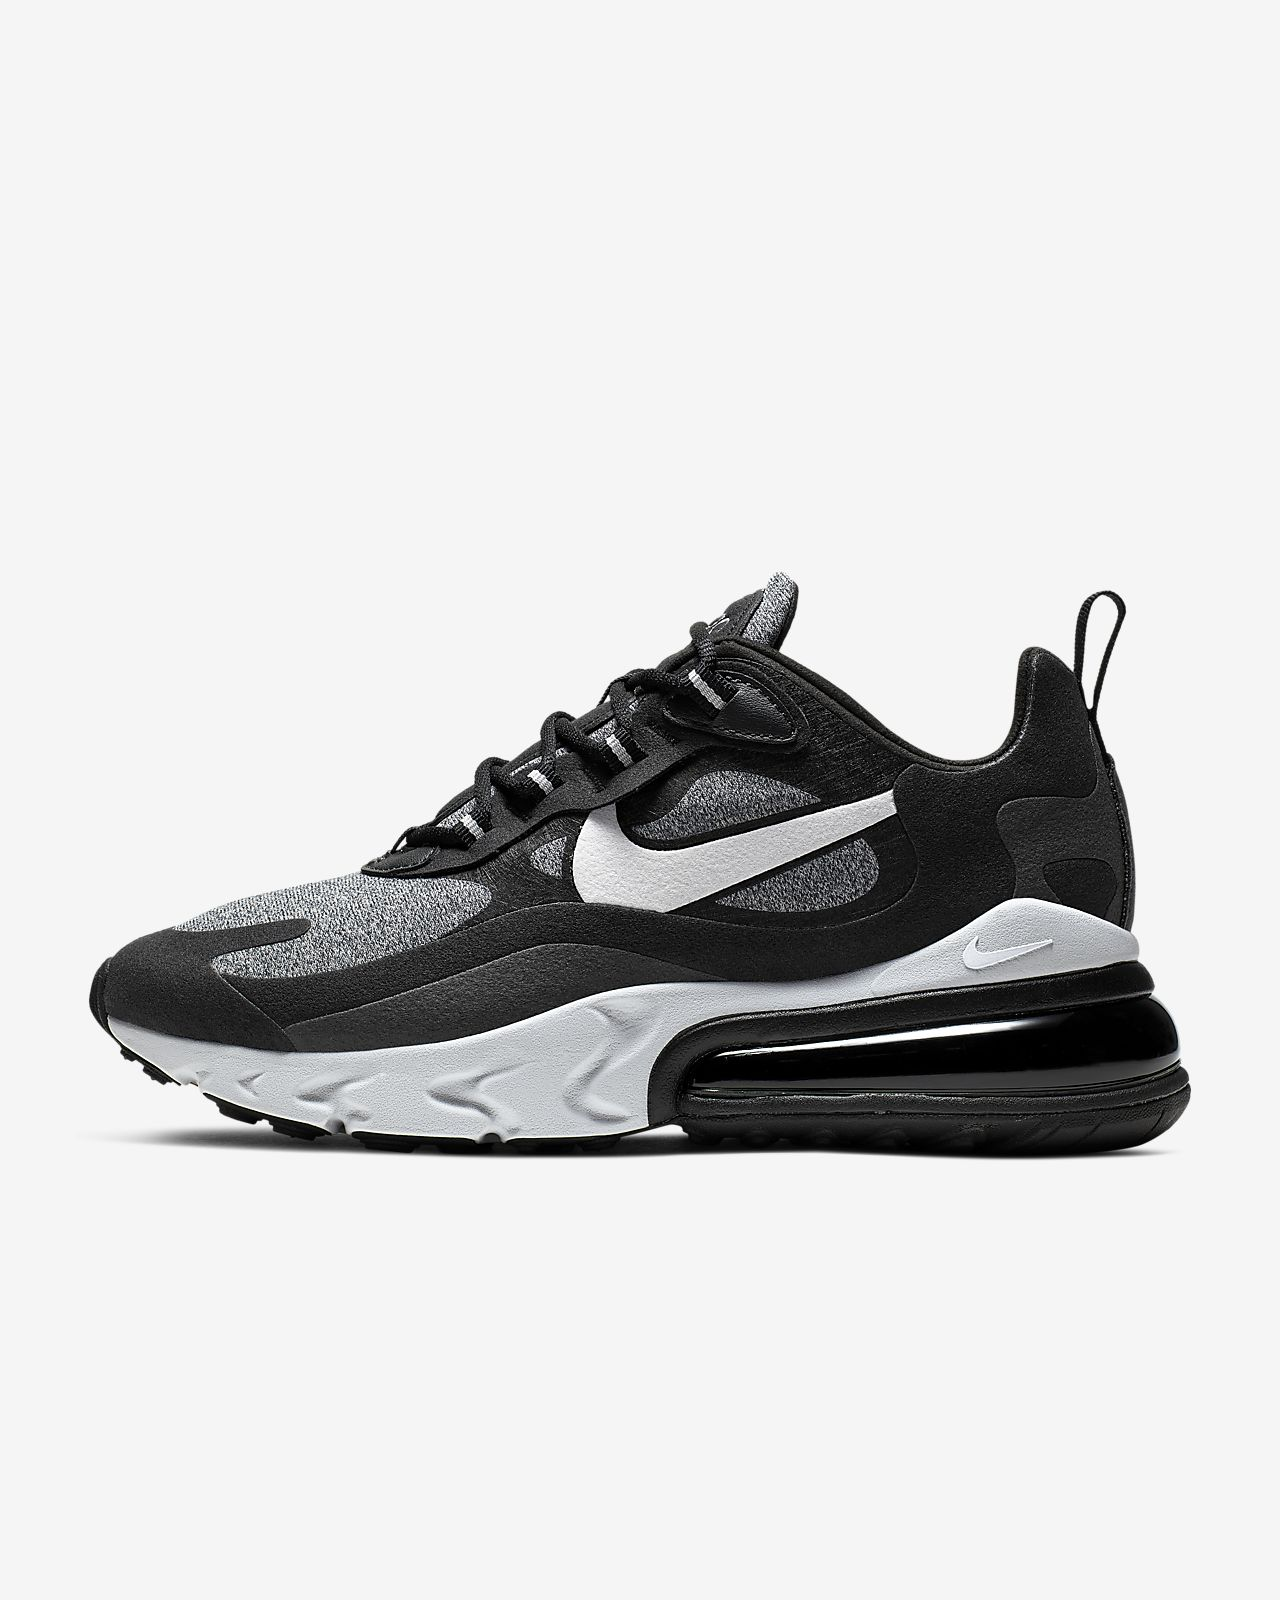 Sko Nike Air Max 270 React (Optical) för kvinnor